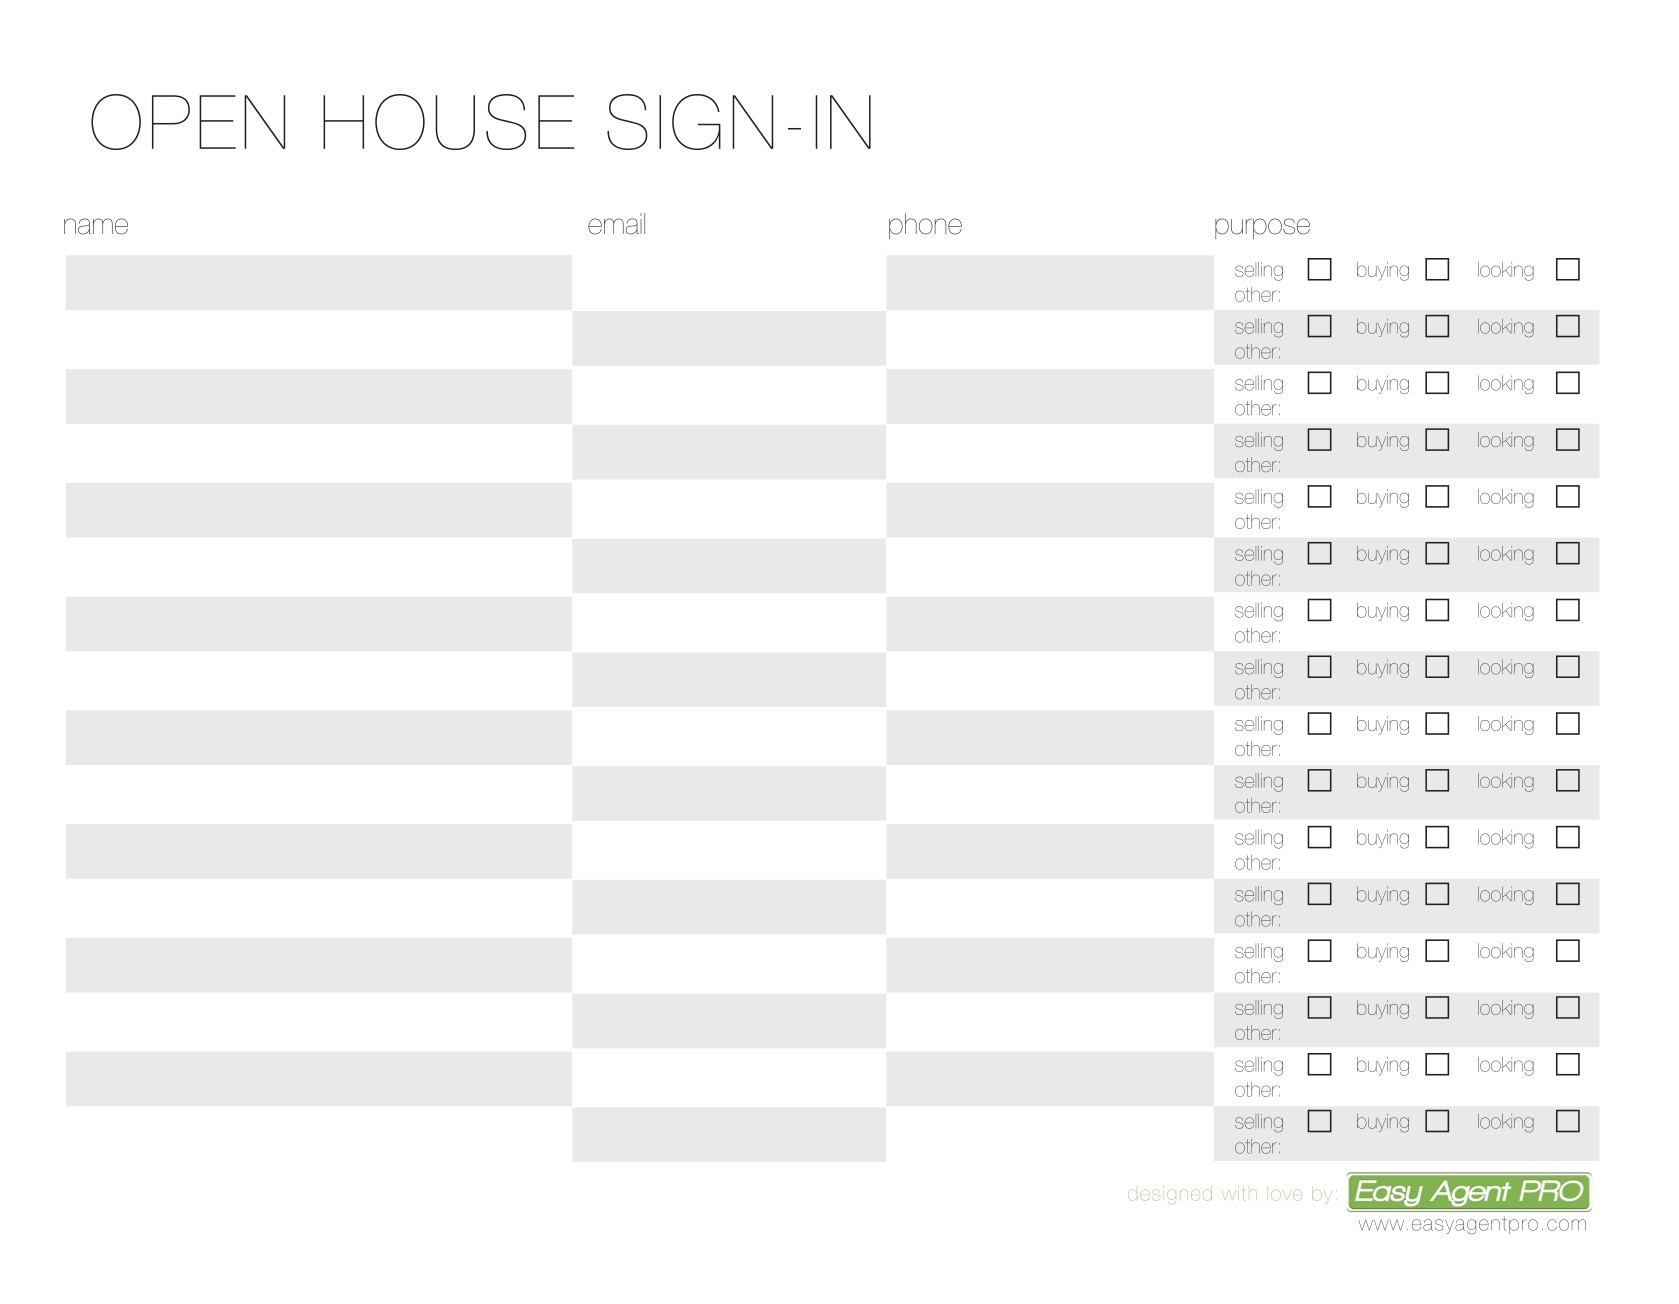 Open house sign in sheet printable templates free ready for use finally you can use a full survey for your open house sign in sheet friedricerecipe Image collections